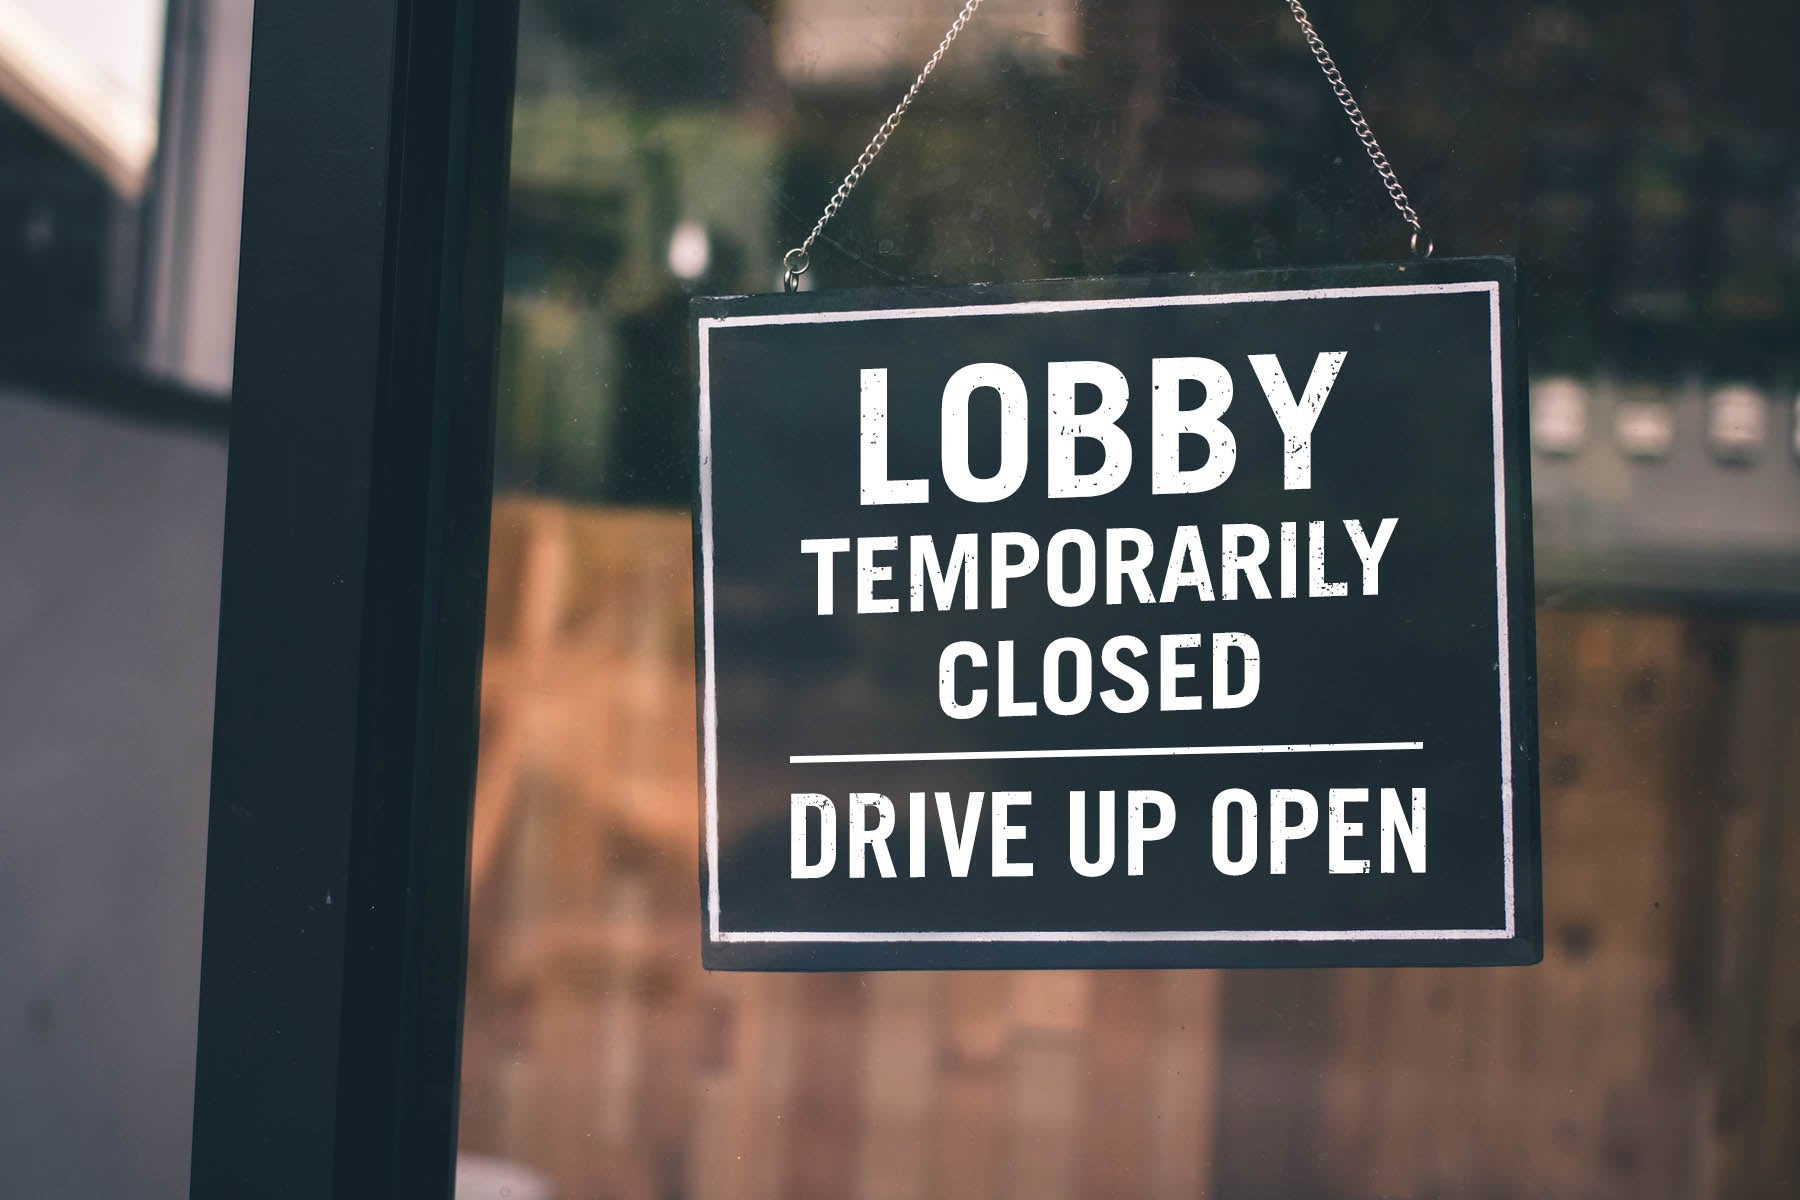 Front store Lobby temporarily closed sign while drive up open